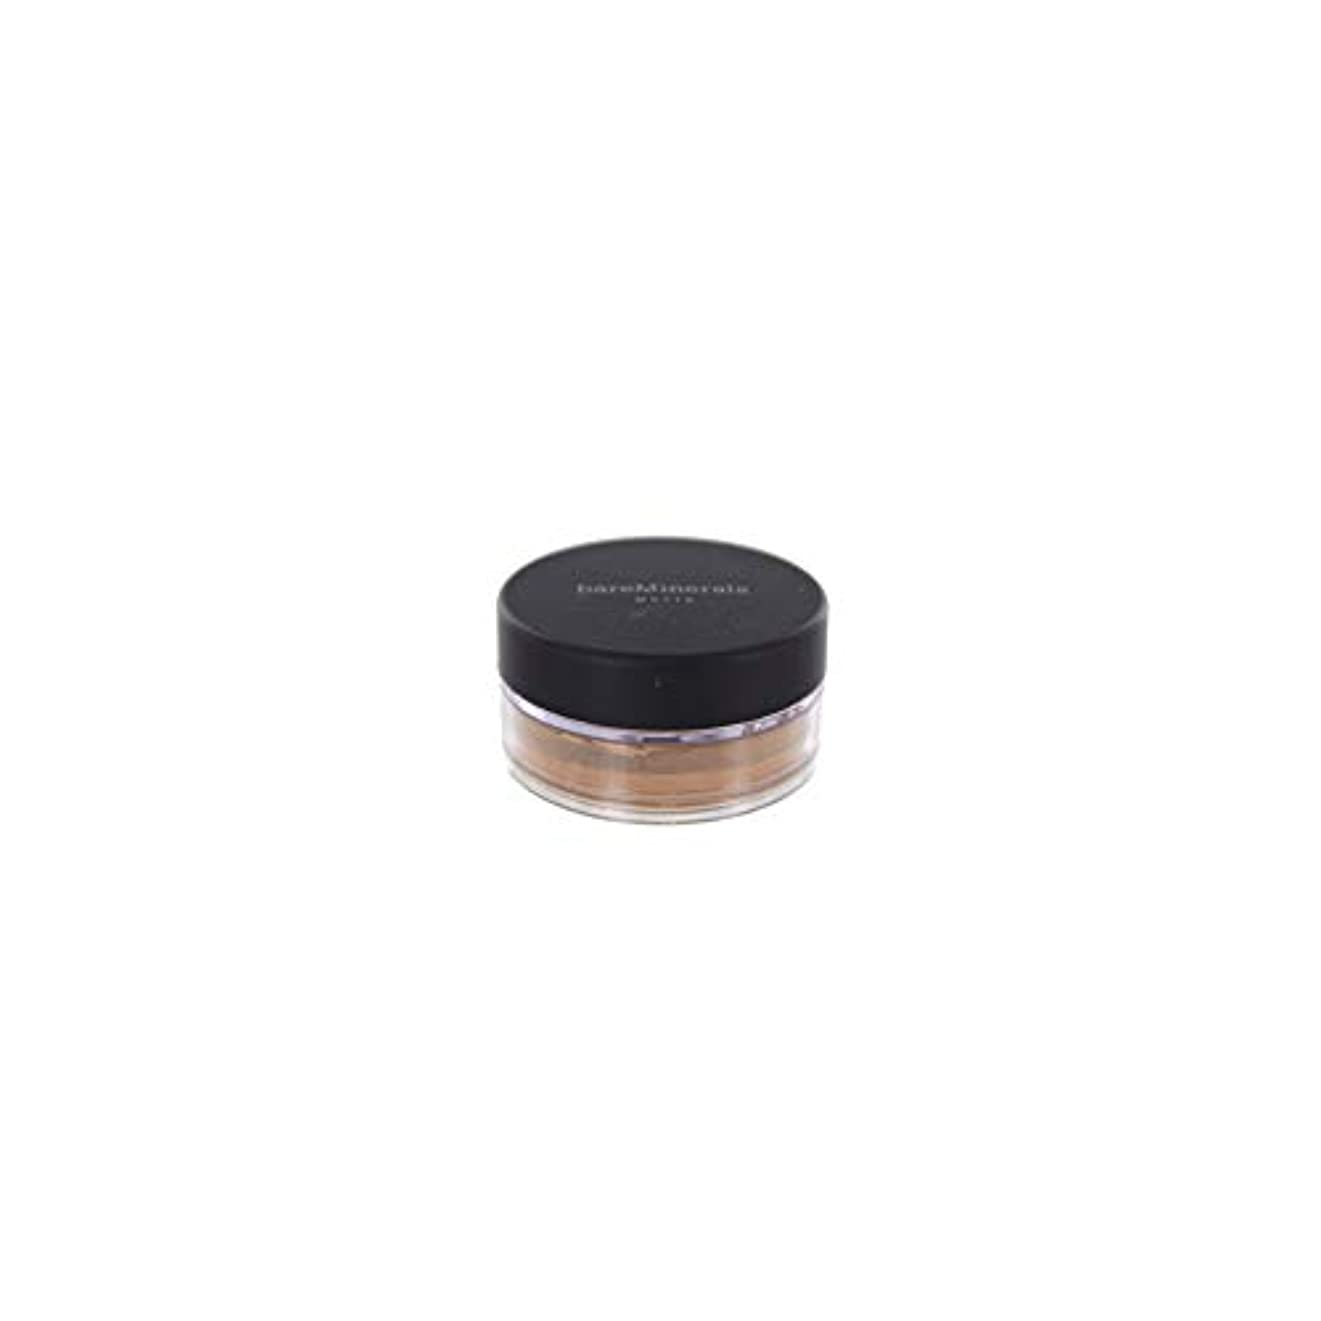 蛾十億スローベアミネラル BareMinerals Matte Foundation Broad Spectrum SPF15 - Neutral Ivory 6g/0.21oz並行輸入品